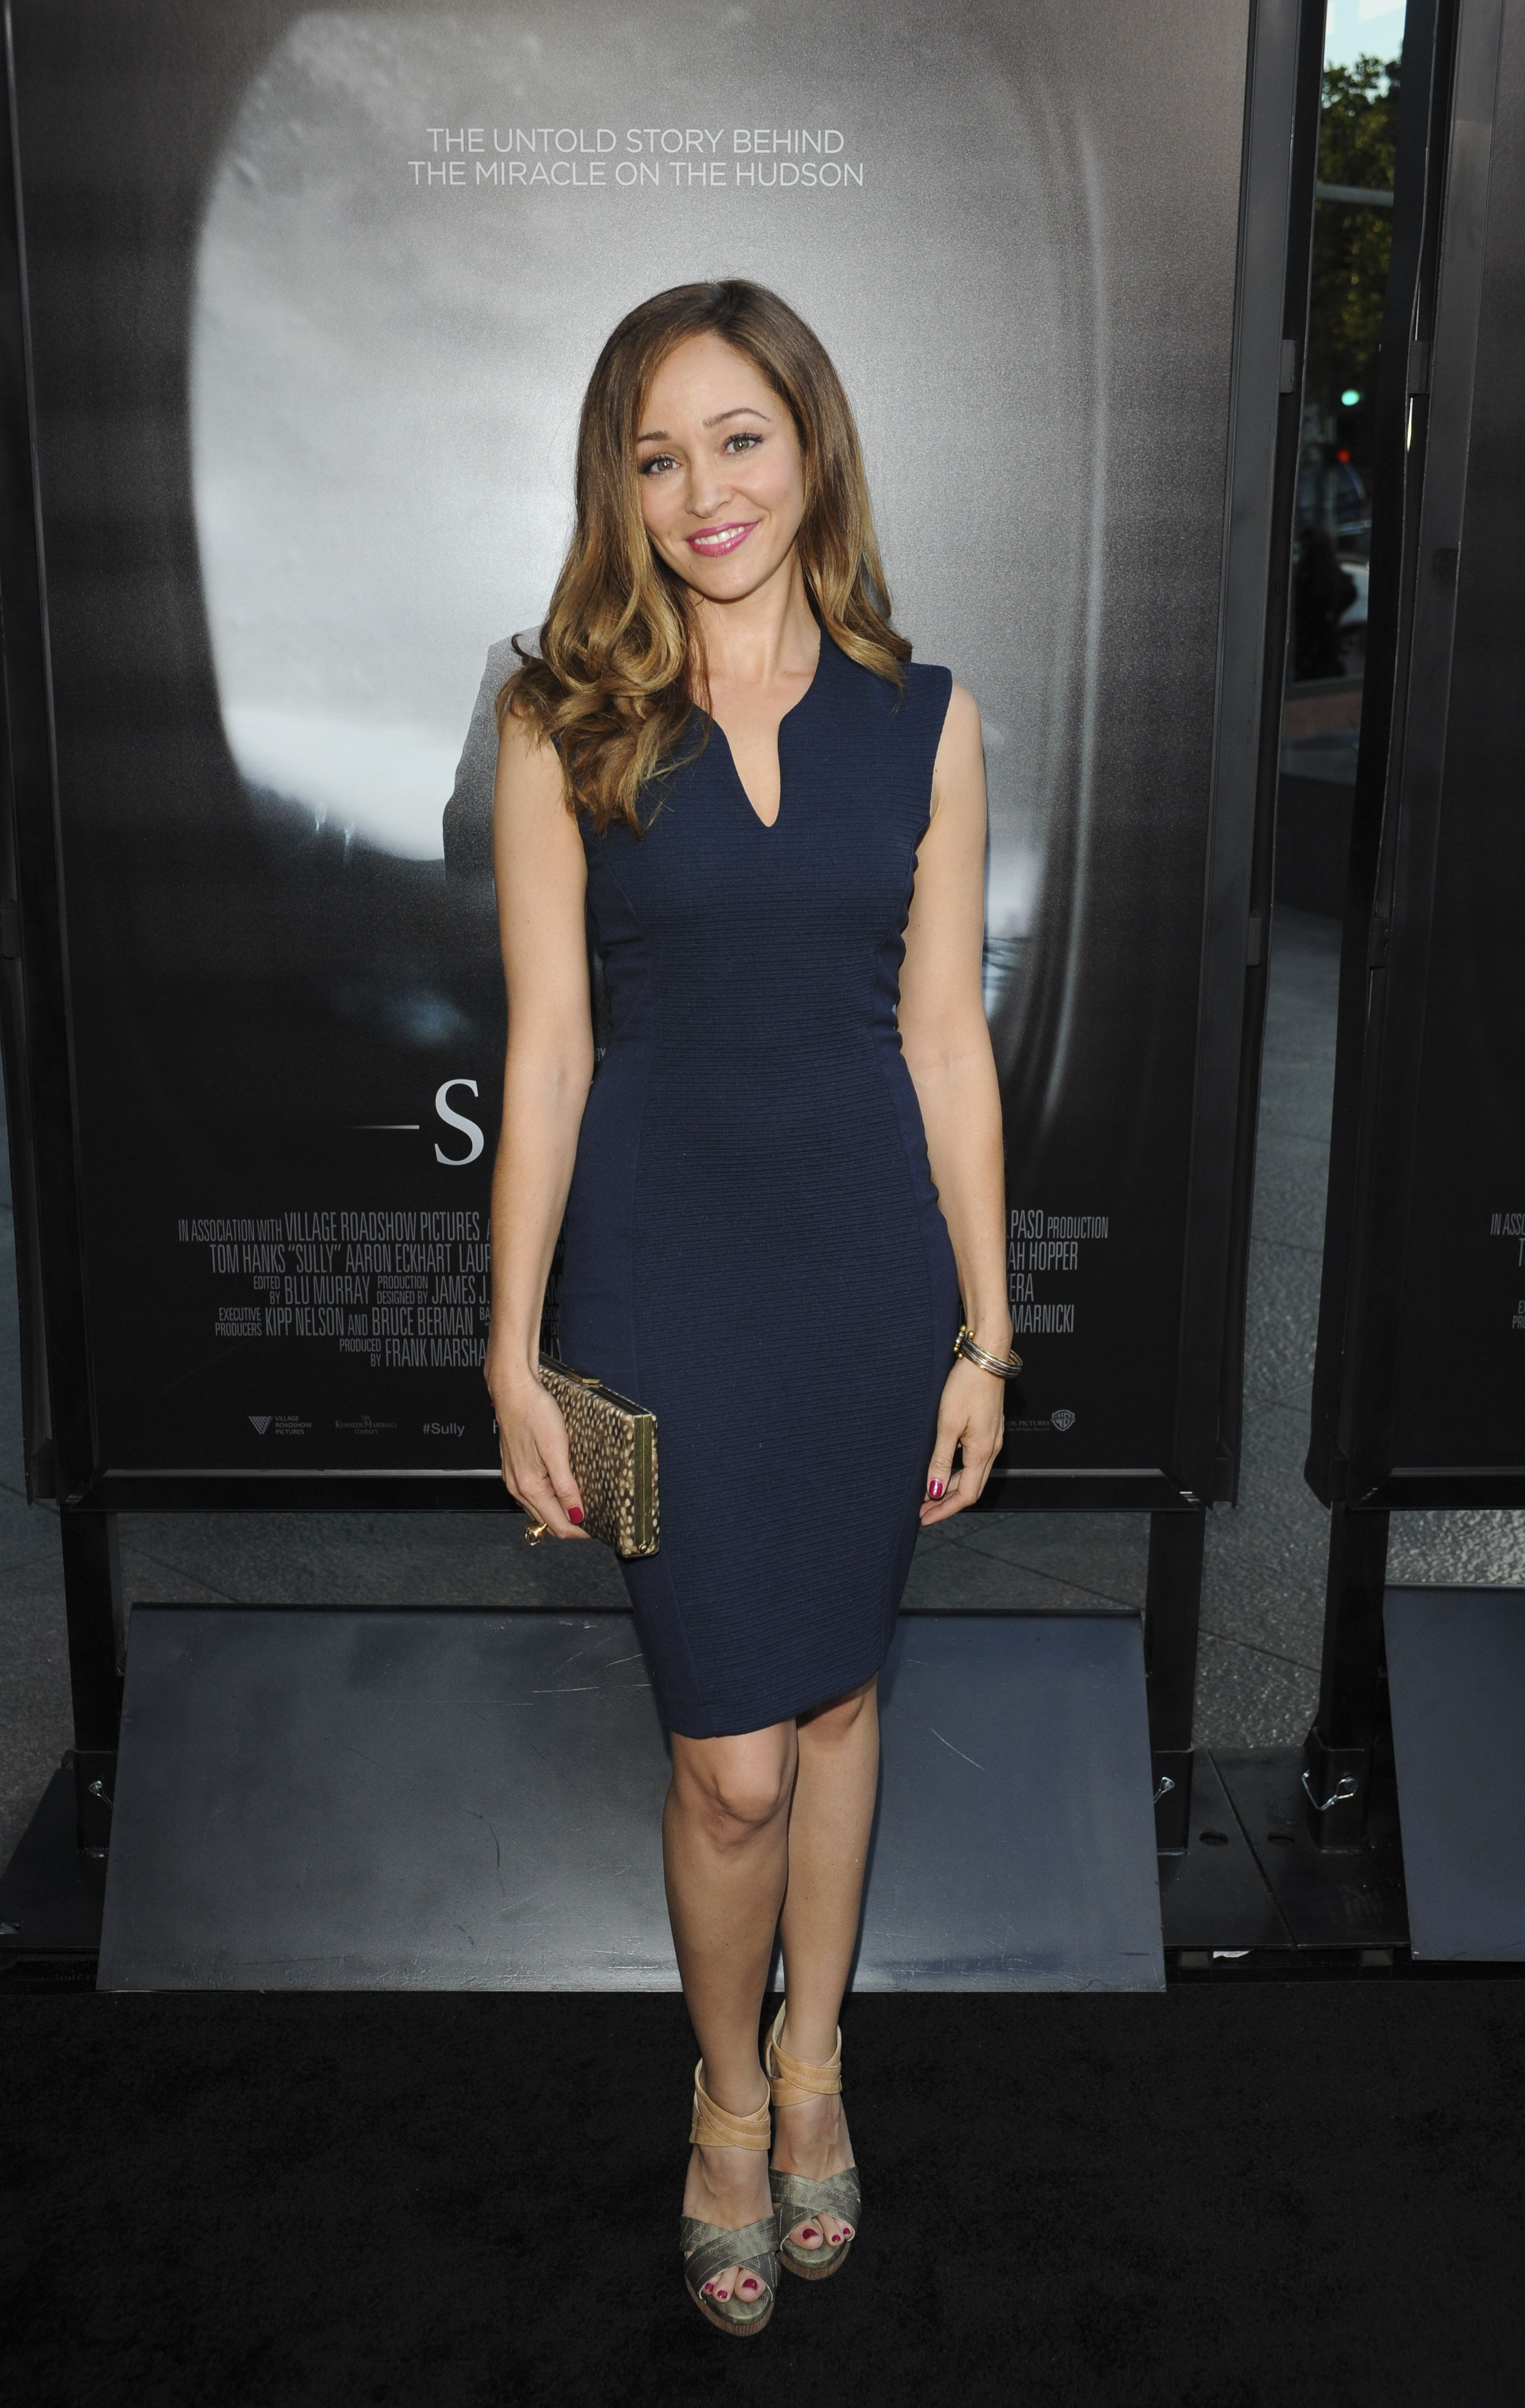 Autumn Reeser (With images) Hallmark christmas movies